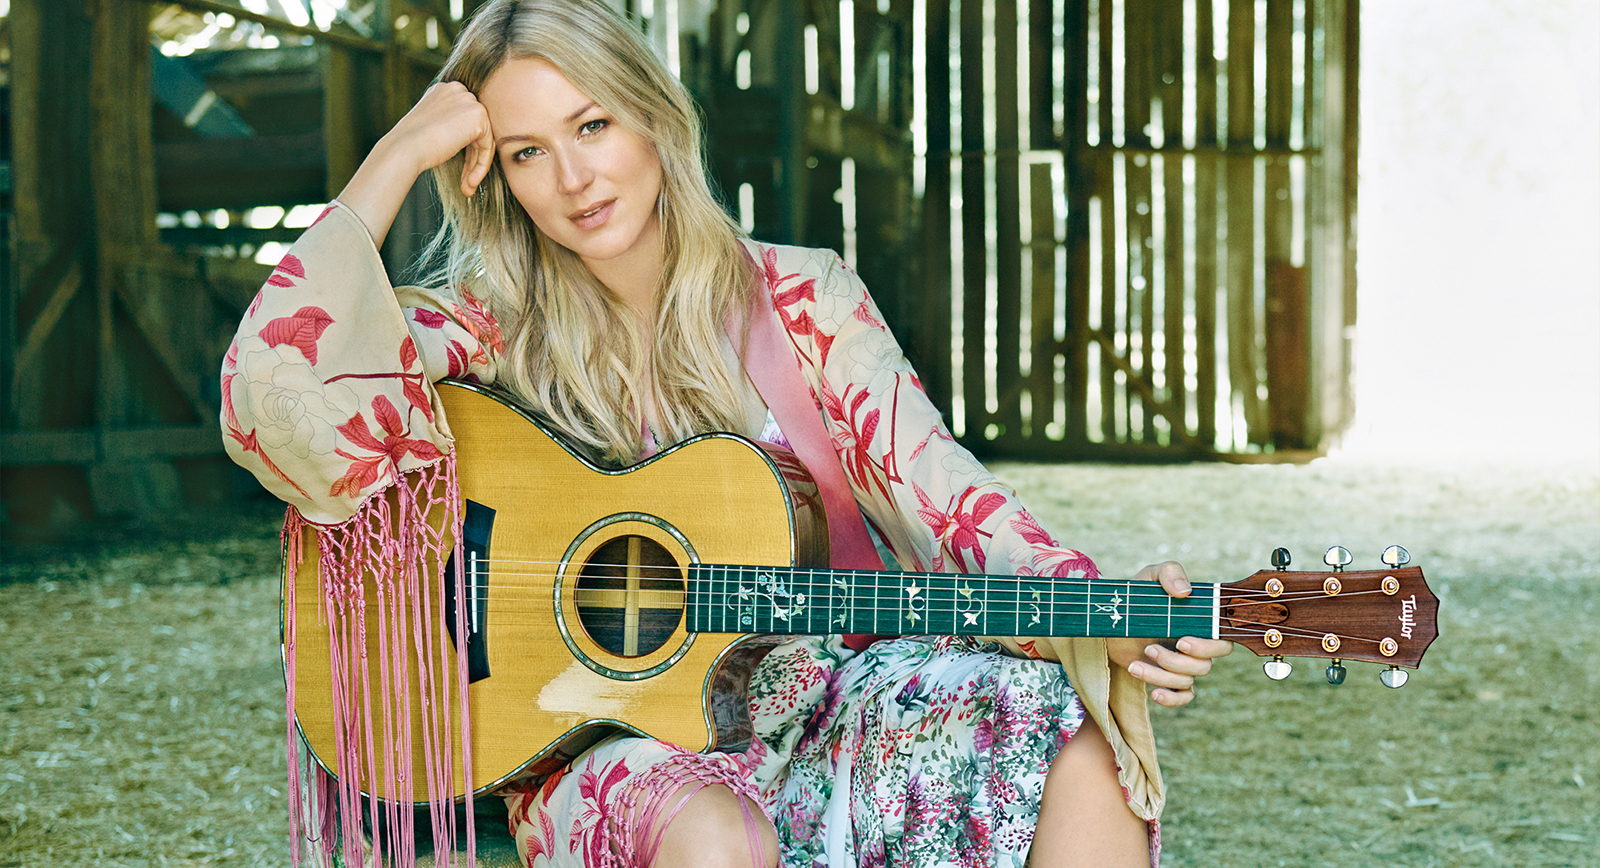 Jewel-Pick-Up-The-Pieces-Tour-2016-Concert-Live-Cities-Dates-Tickets-FIa